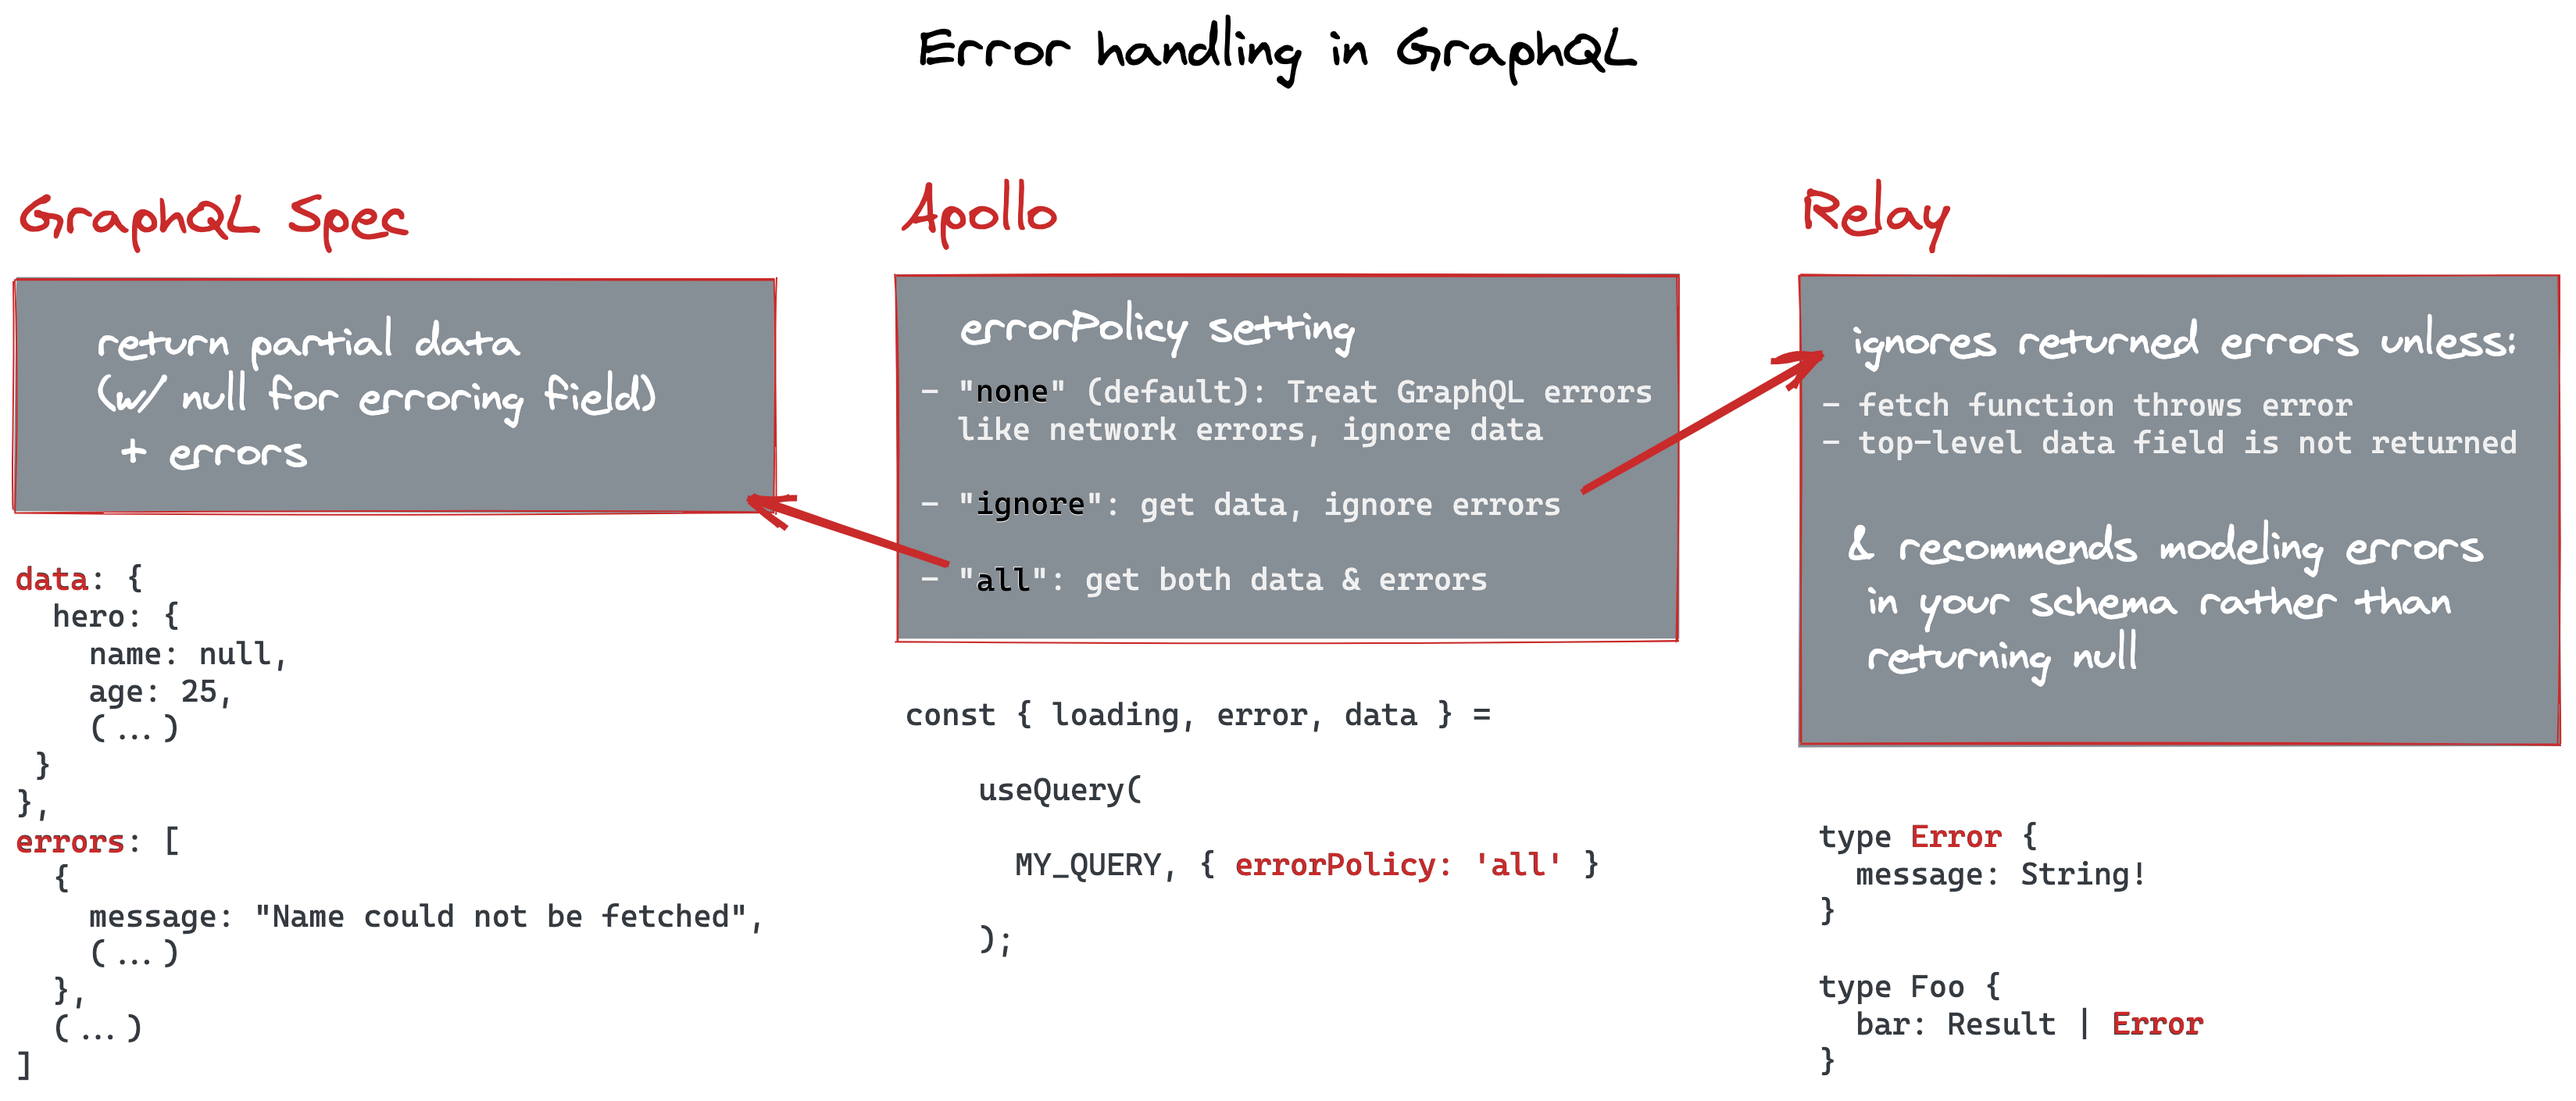 Error handling: GraphQL spec vs Apollo vs Relay